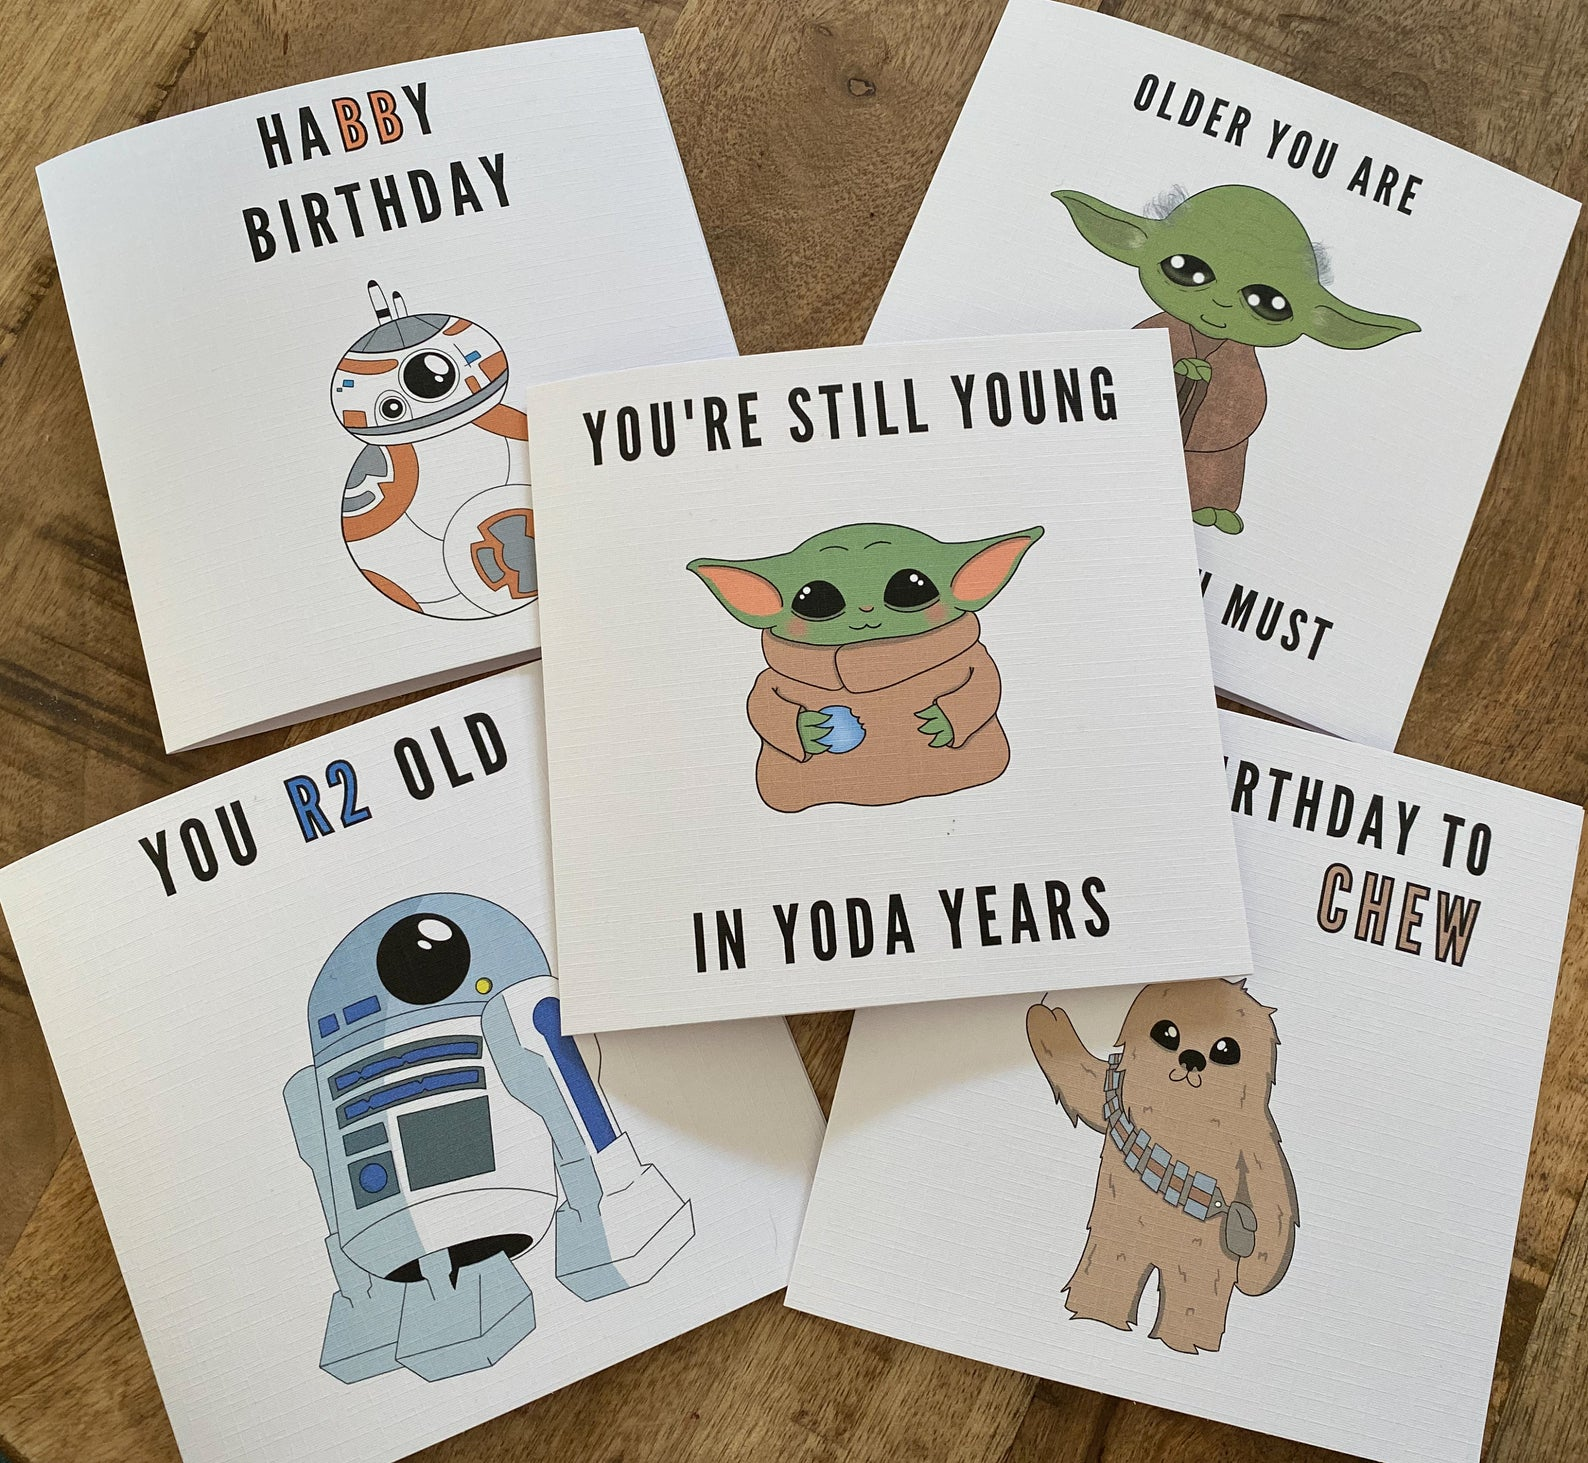 [Image description: five birthday cards with art work of Star Wars characters and cutesy captions]